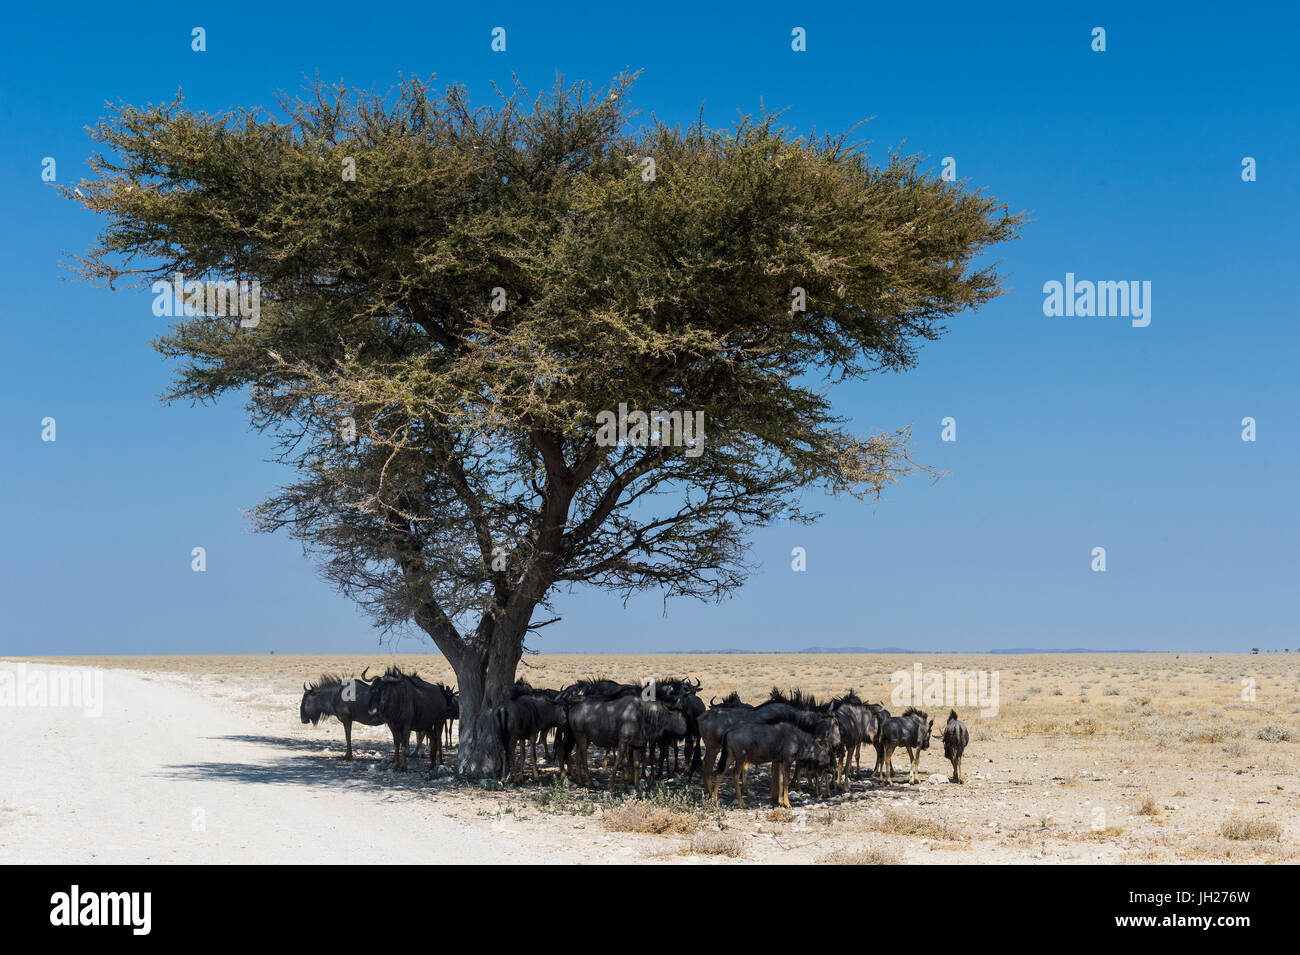 Wildebeests under an acacia tree in the Etosha National Park, Namibia, Africa - Stock Image